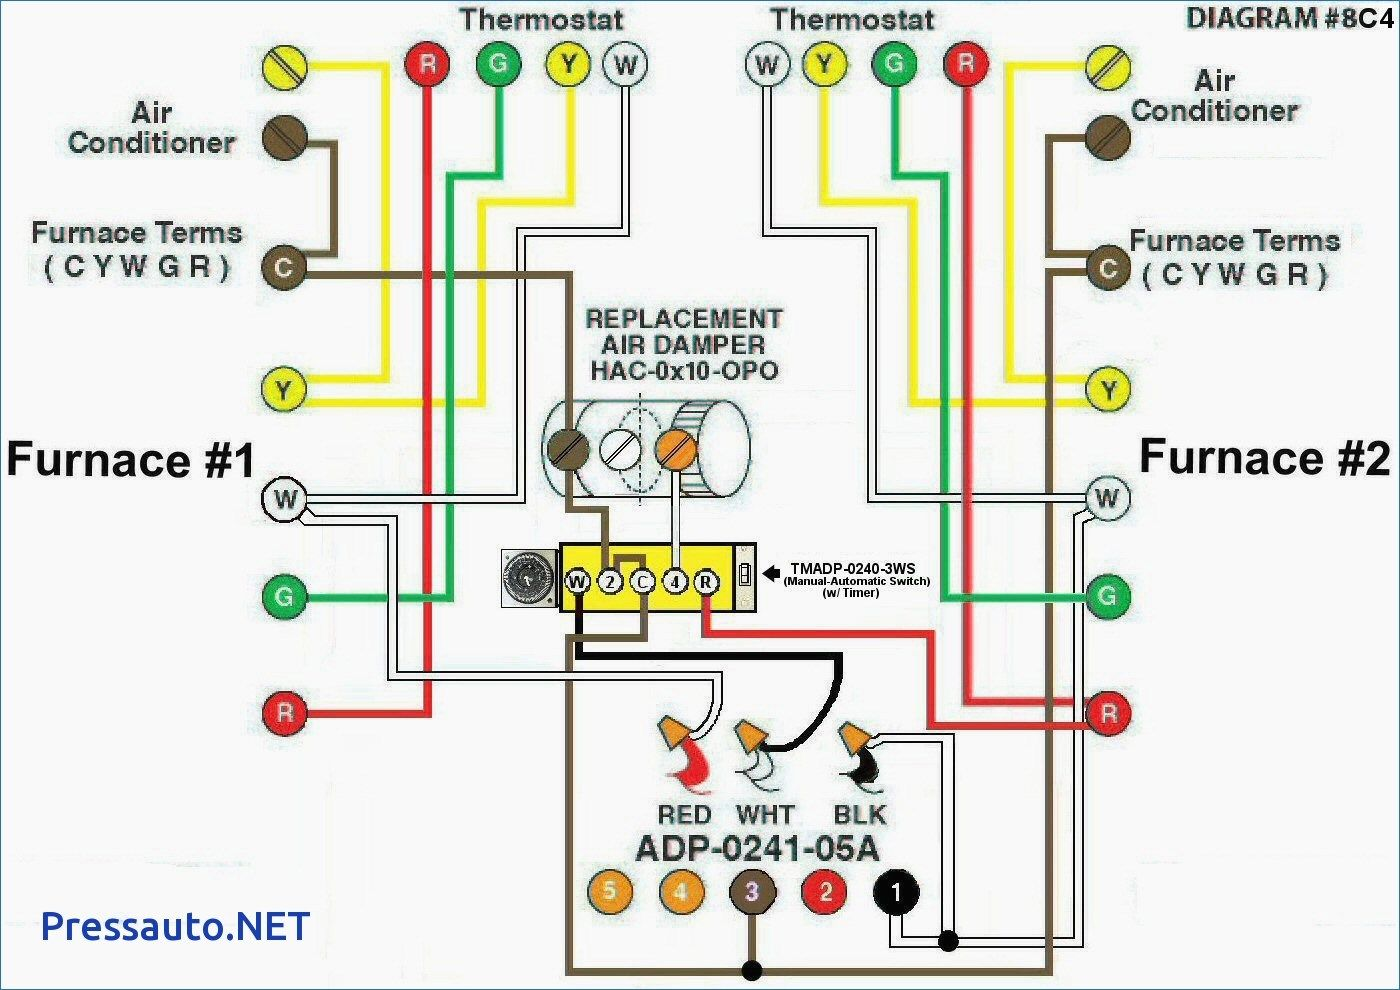 medium resolution of wiring for lennox furnace wiring diagram datasource lennox furnace thermostat wiring diagram hecho